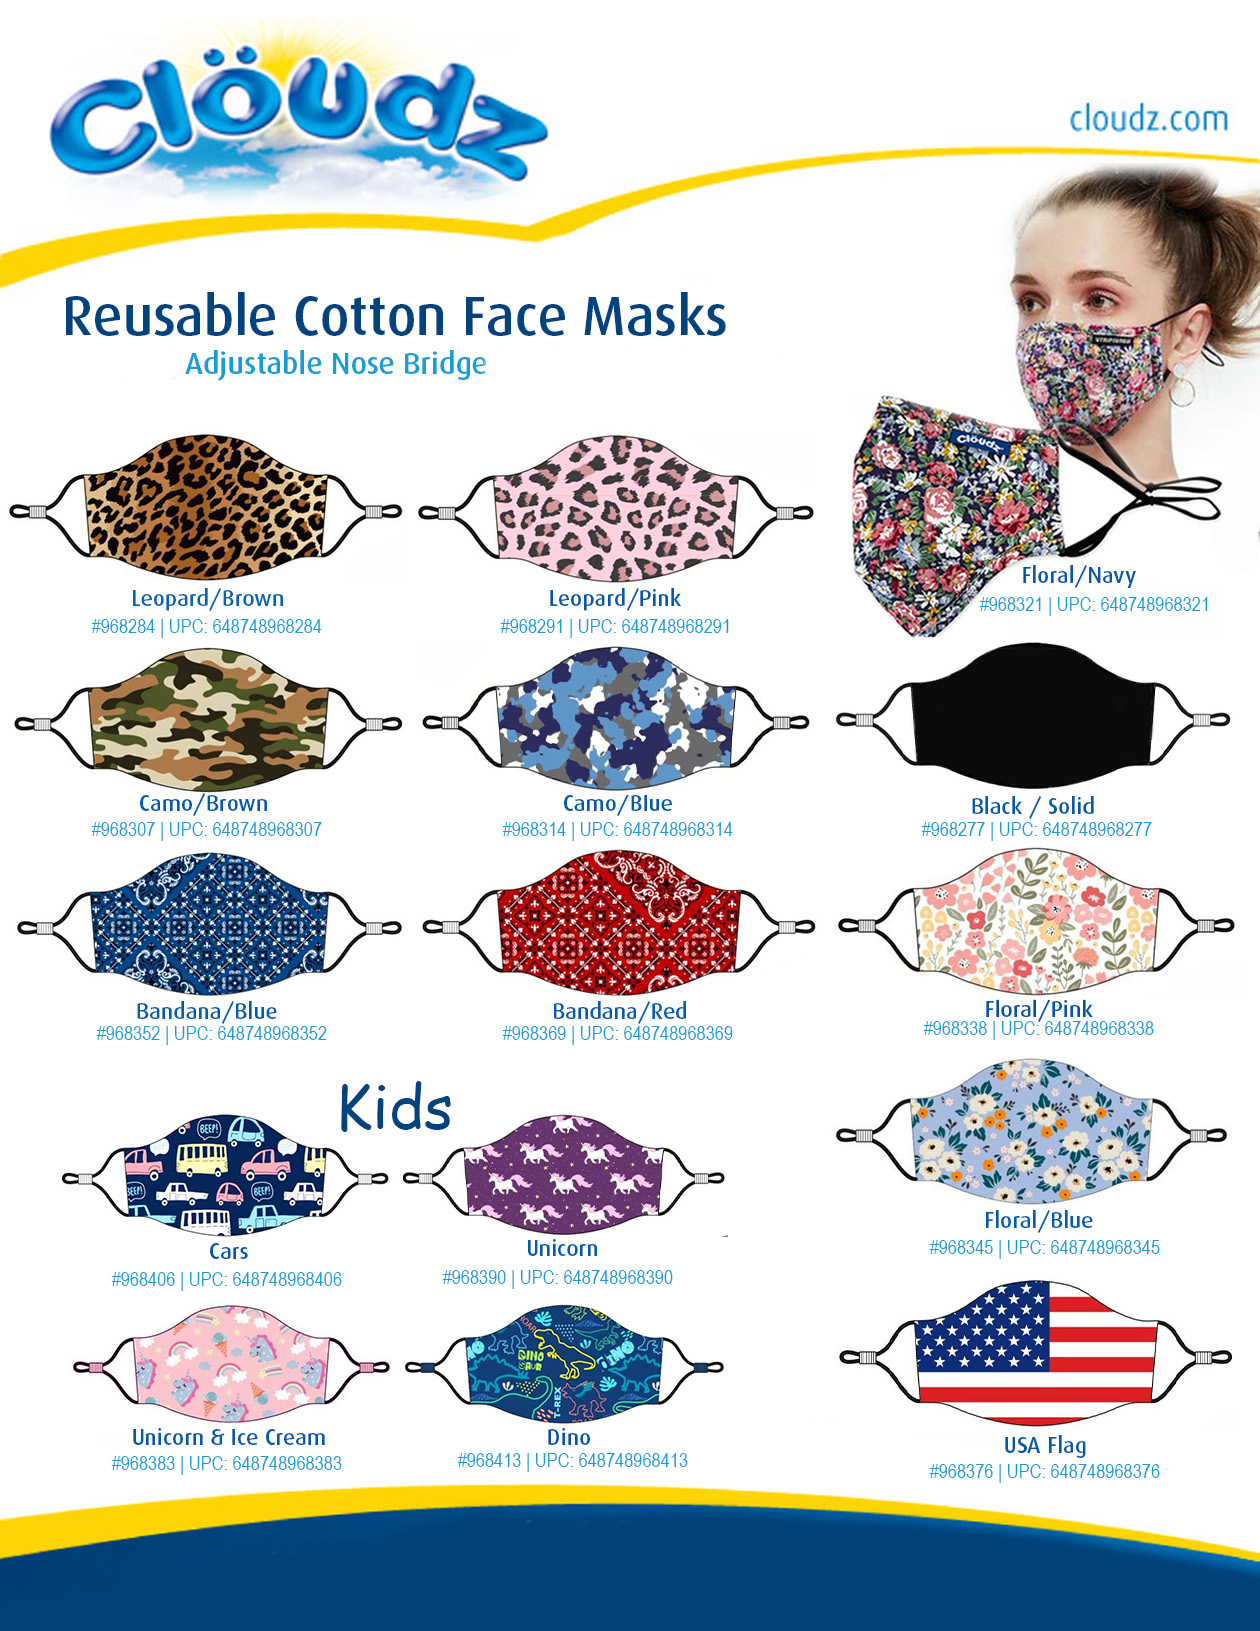 Reusable Cotton Face Masks 5-6-20